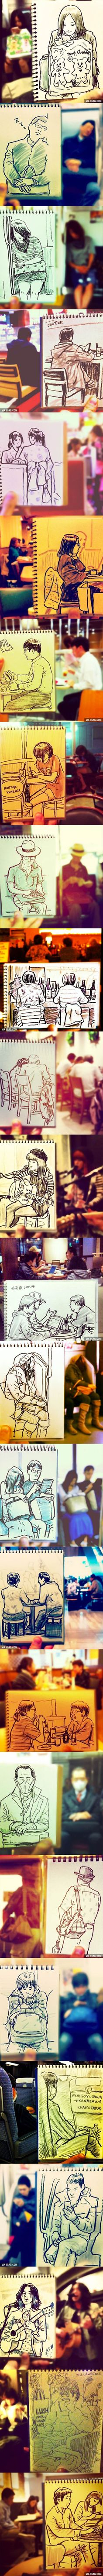 When A Japanese Illustrator Draws Simple Everyday Scenes In Beautiful Speed Sketches - 9gag